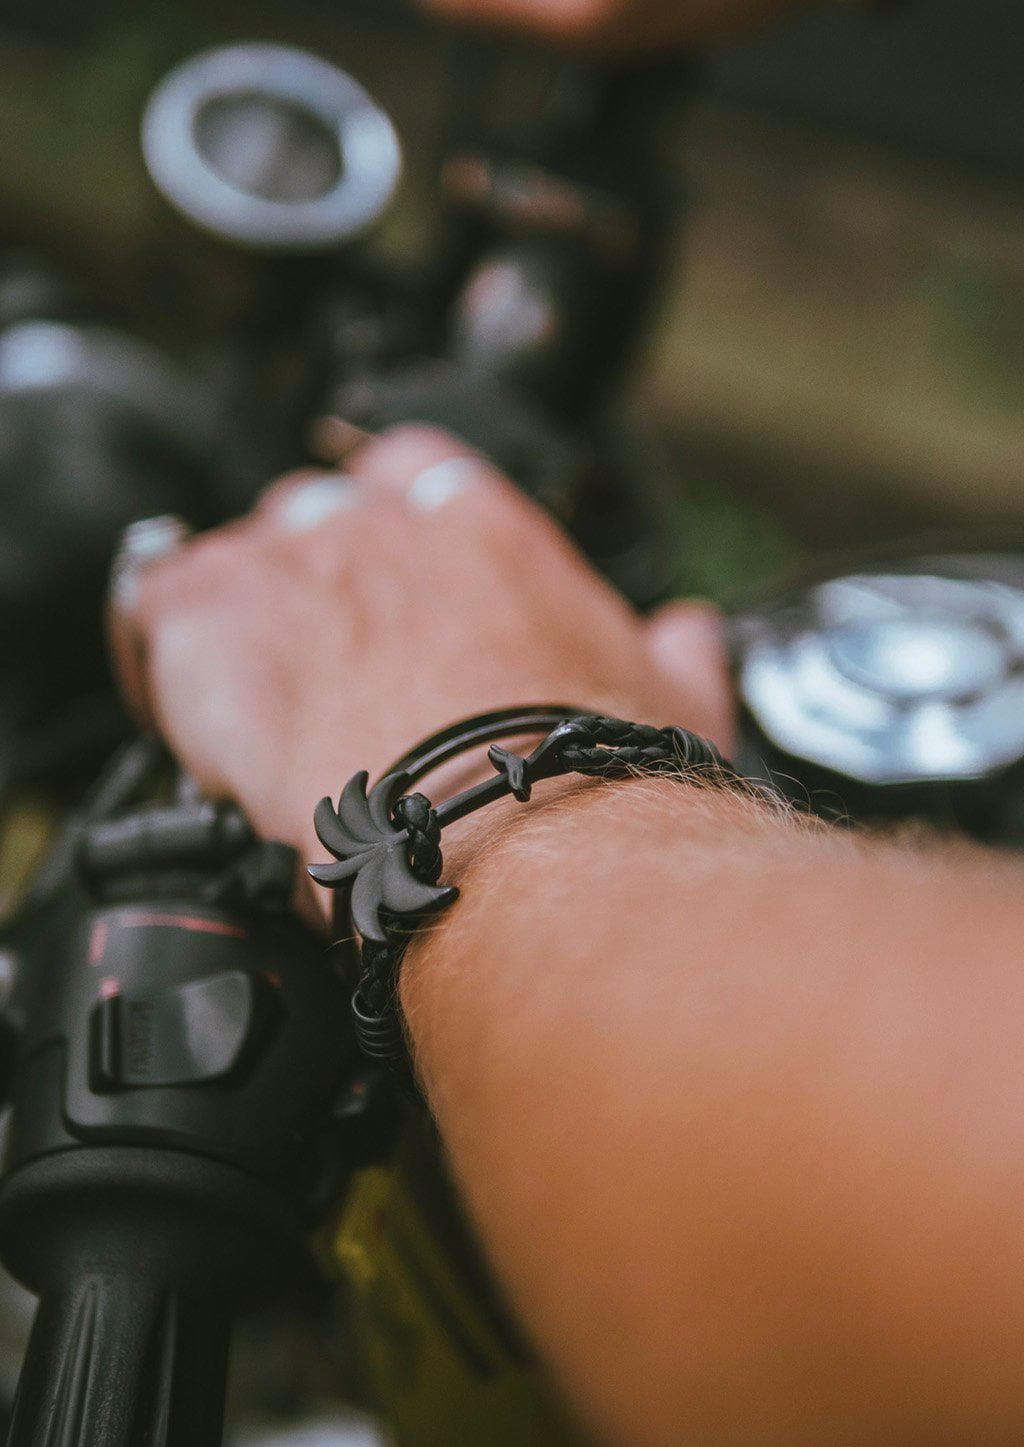 Pitch Black - Palm anchor bracelet with black leather. Shoot in Thailand.